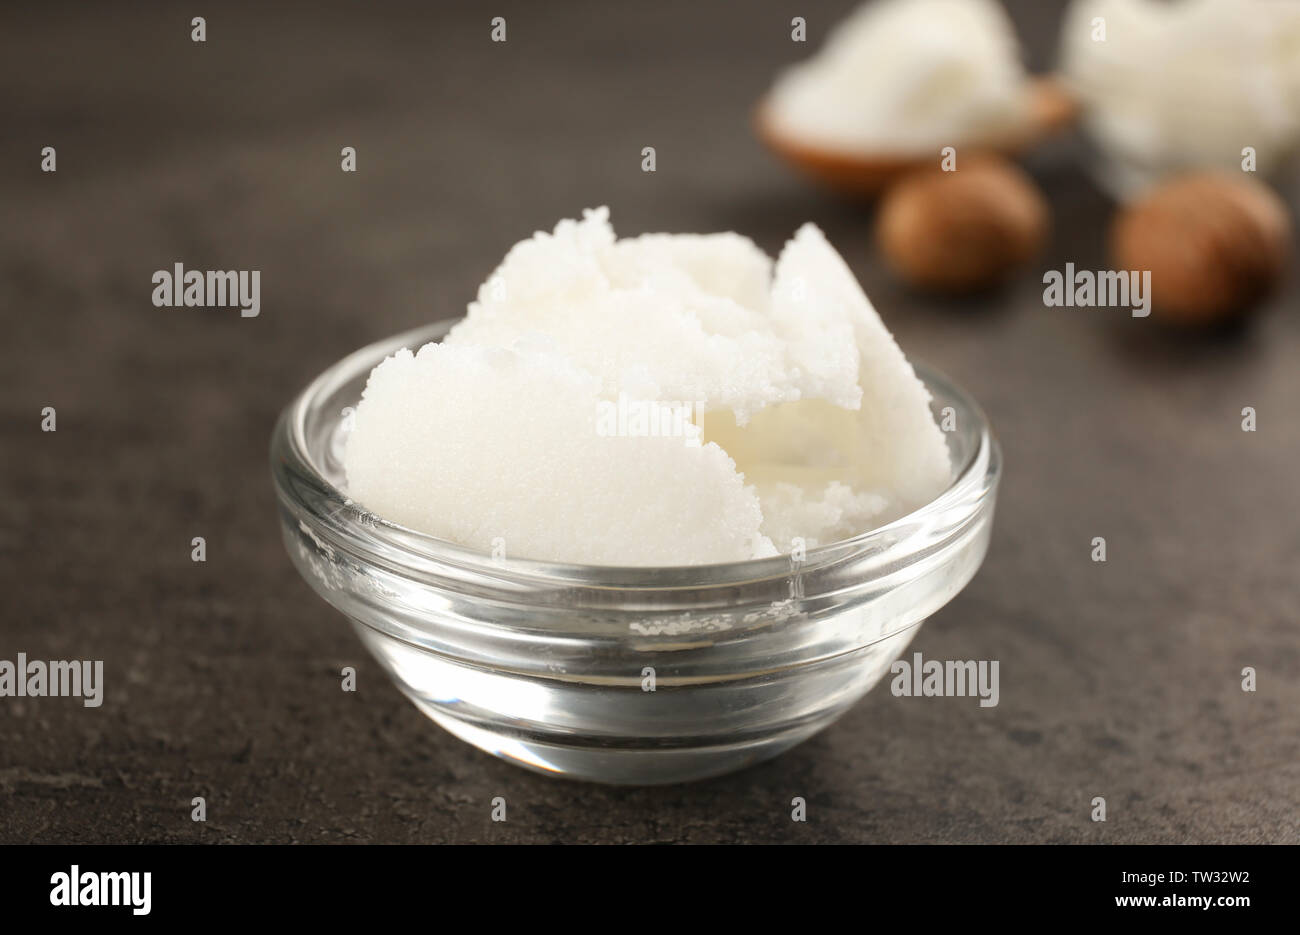 Shea butter in glass bowl on table, close up Stock Photo